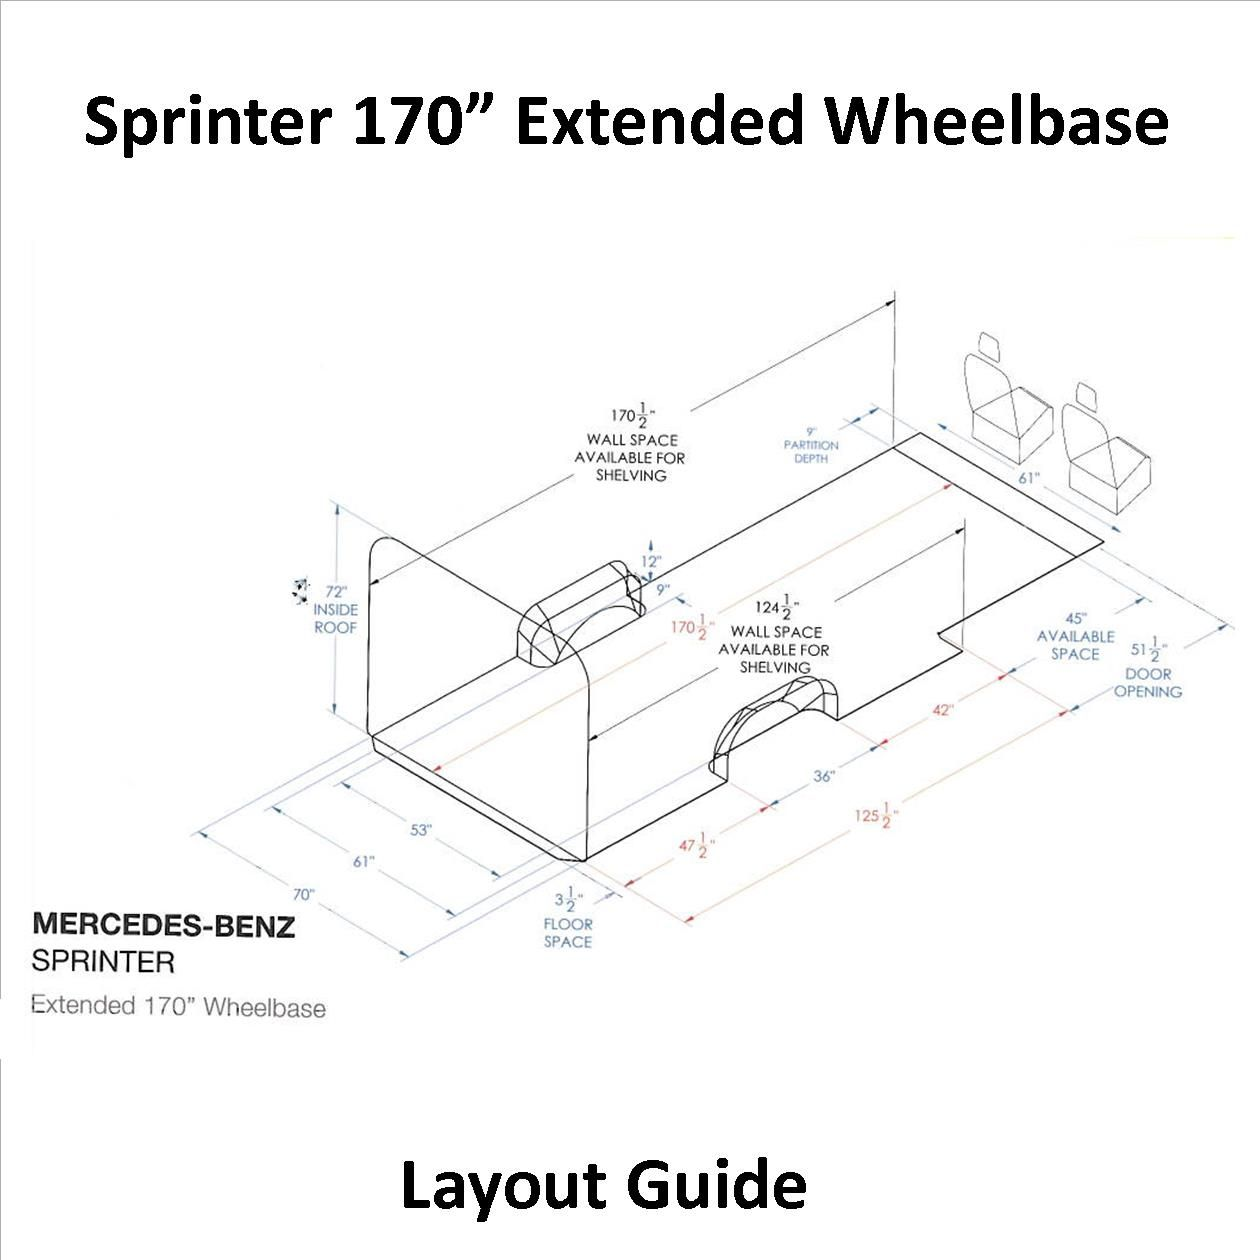 hight resolution of sprinter layout guide 170 extended wb inlad truck van company